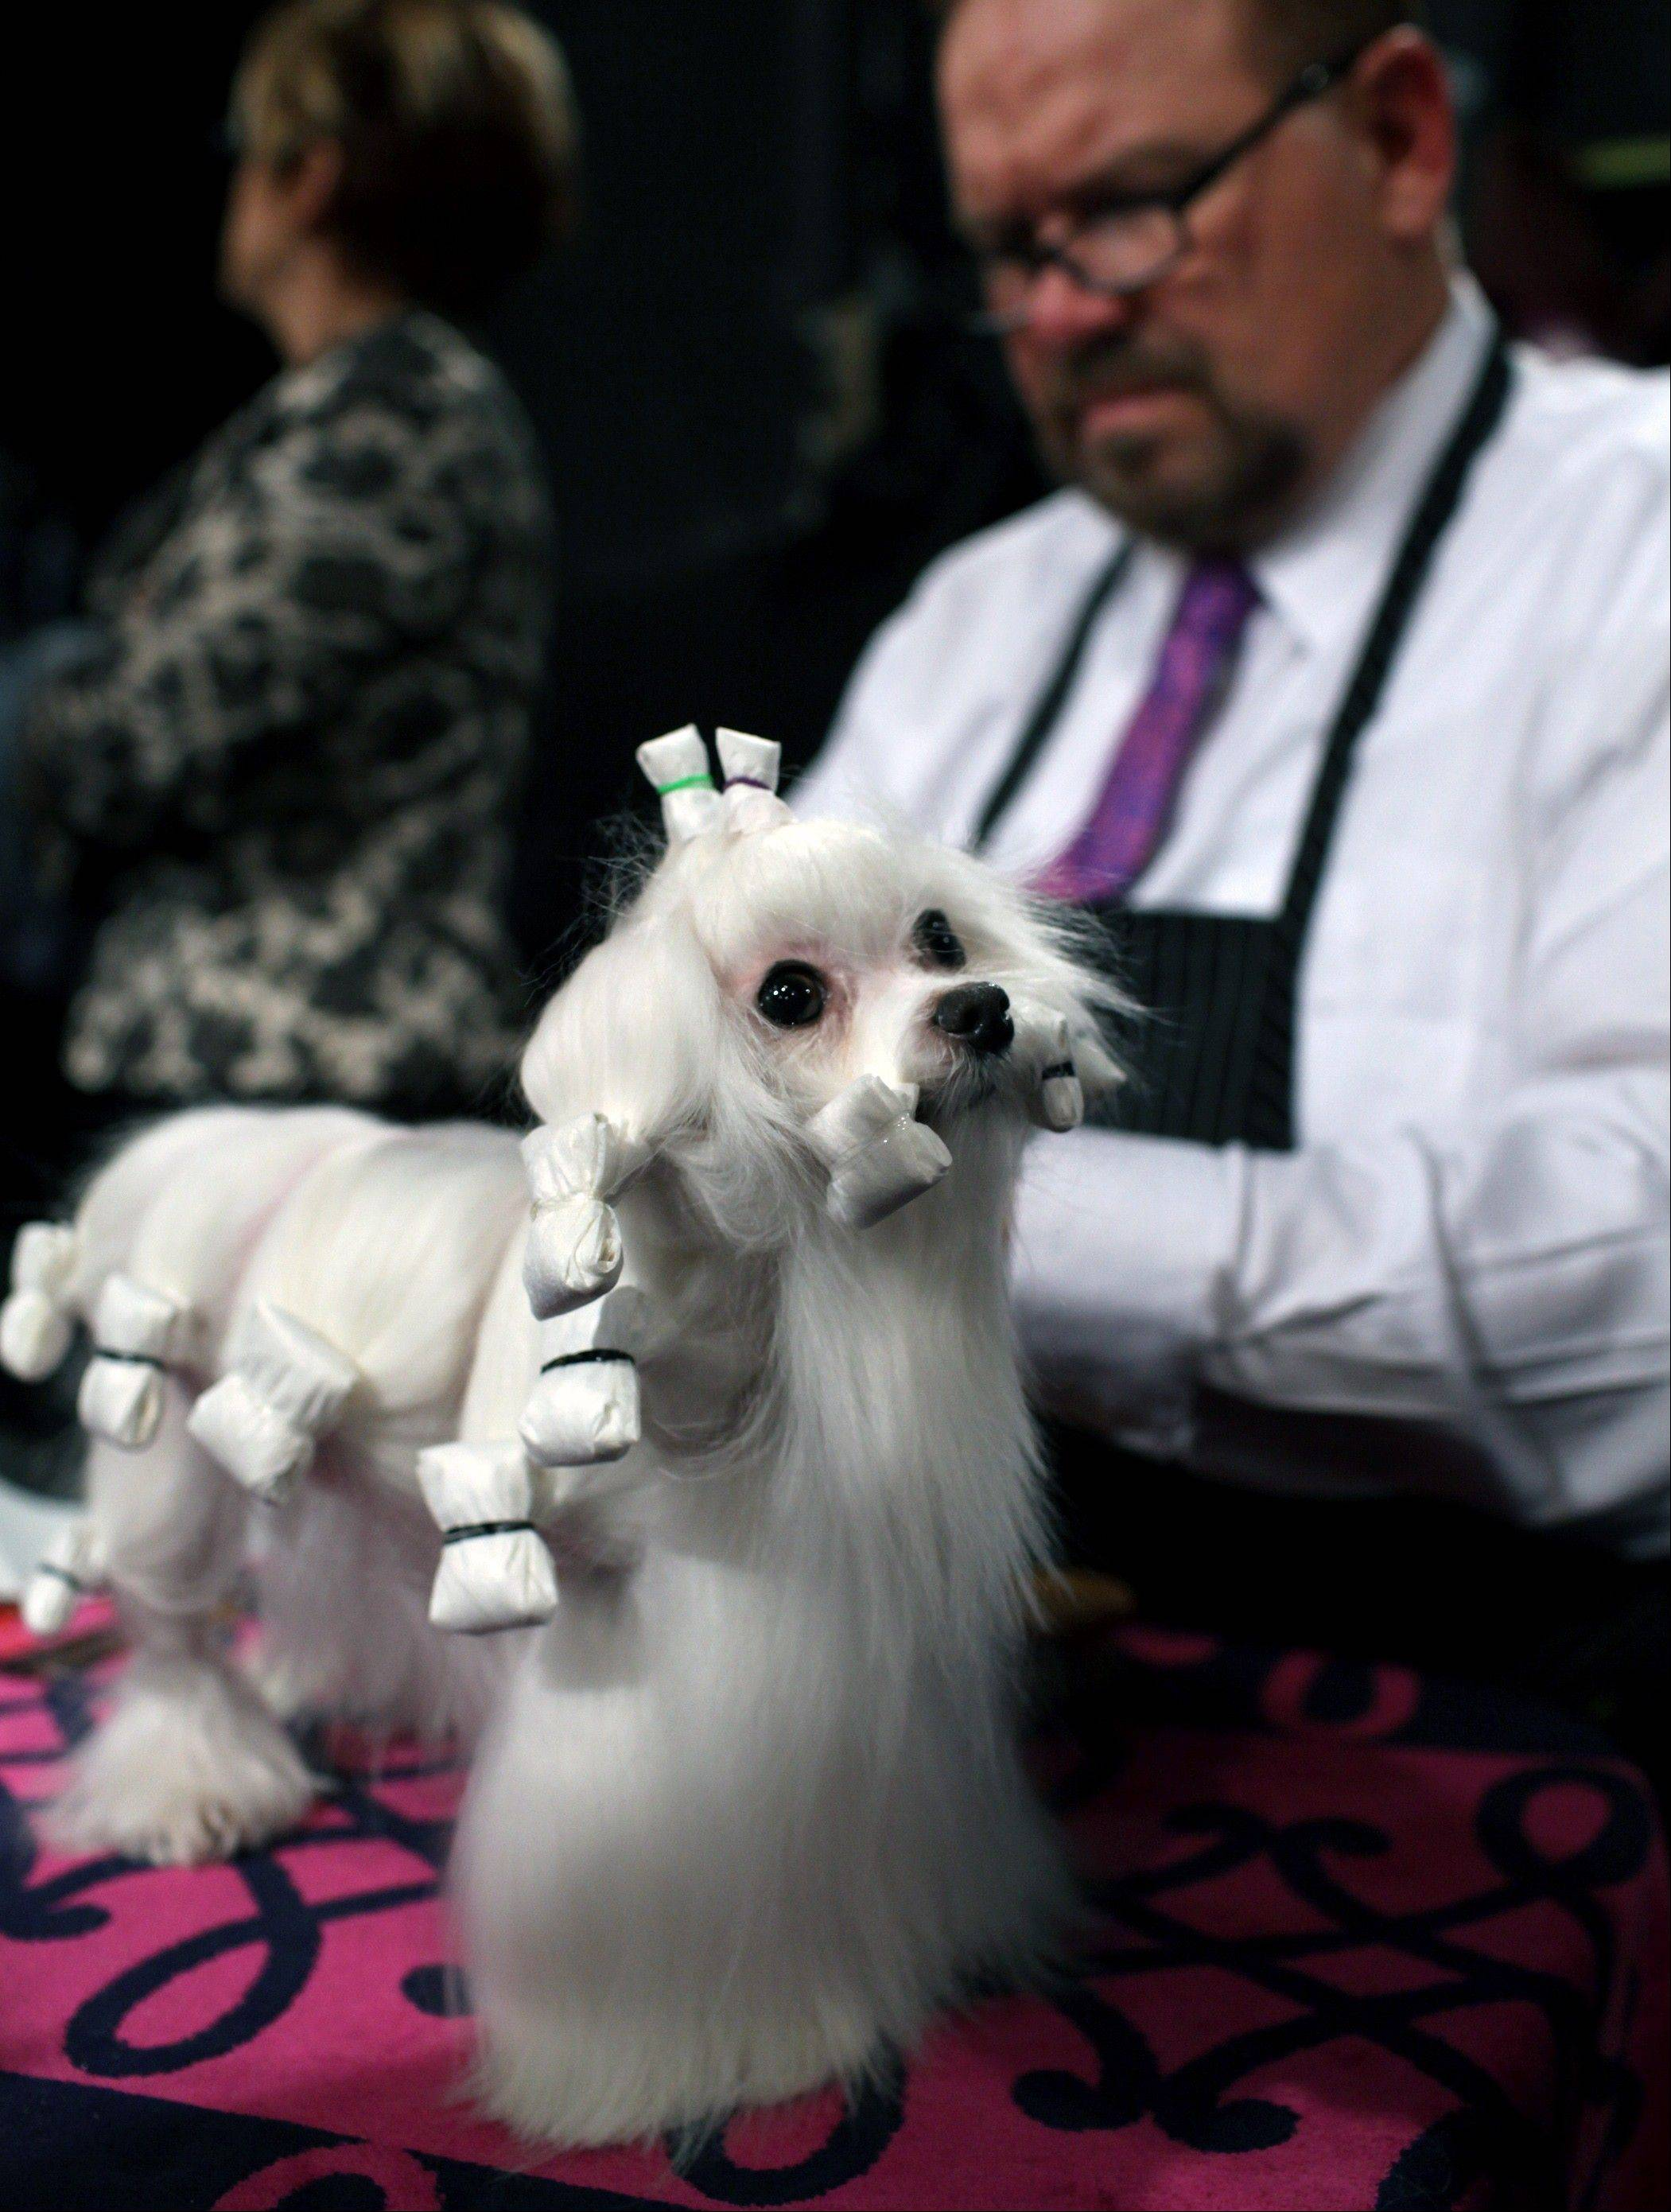 Dottie, a maltese owned by Beverly Quilliam and Wayne Baker of West Chester, Pa., is groomed by Luke Ehricht of Toledo, Ohio.